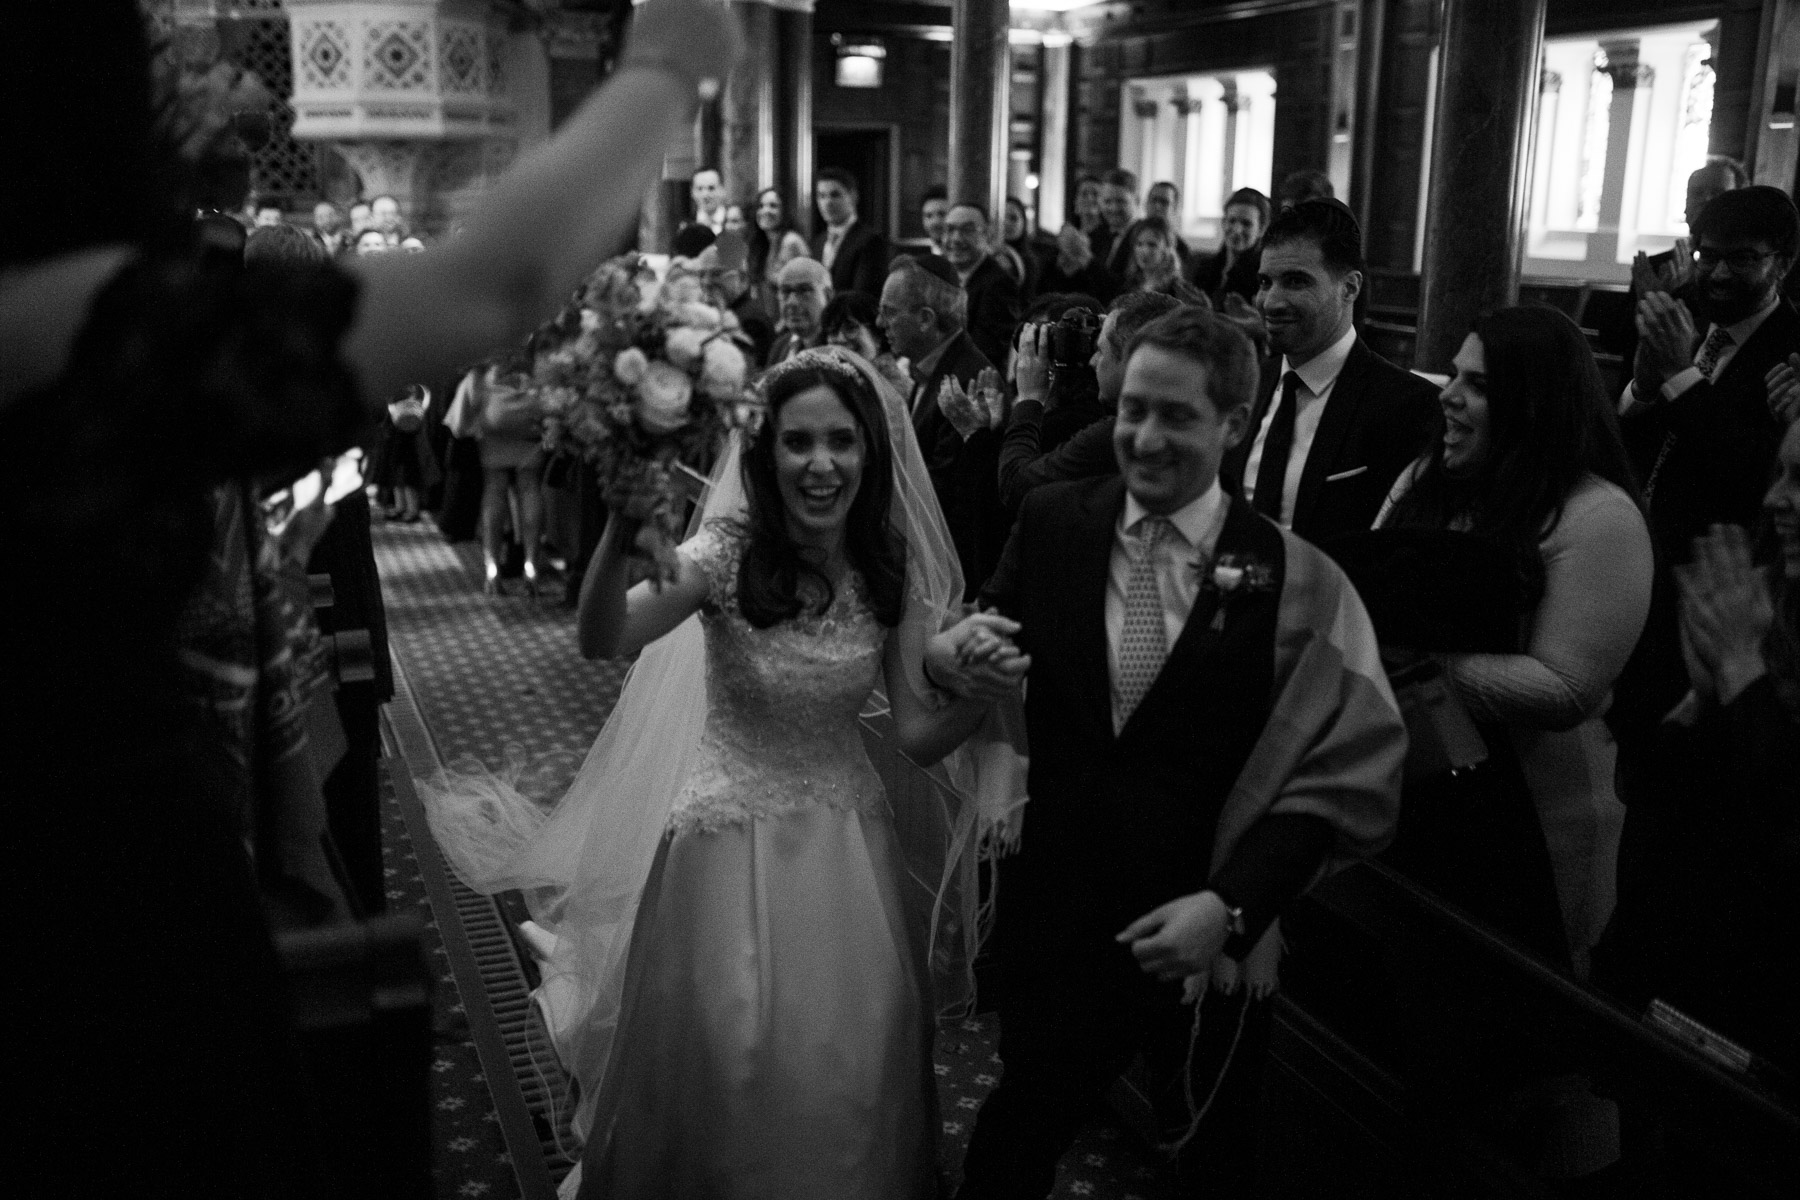 Relaxed and intimate moment of bride and groom leaving wedding ceremony